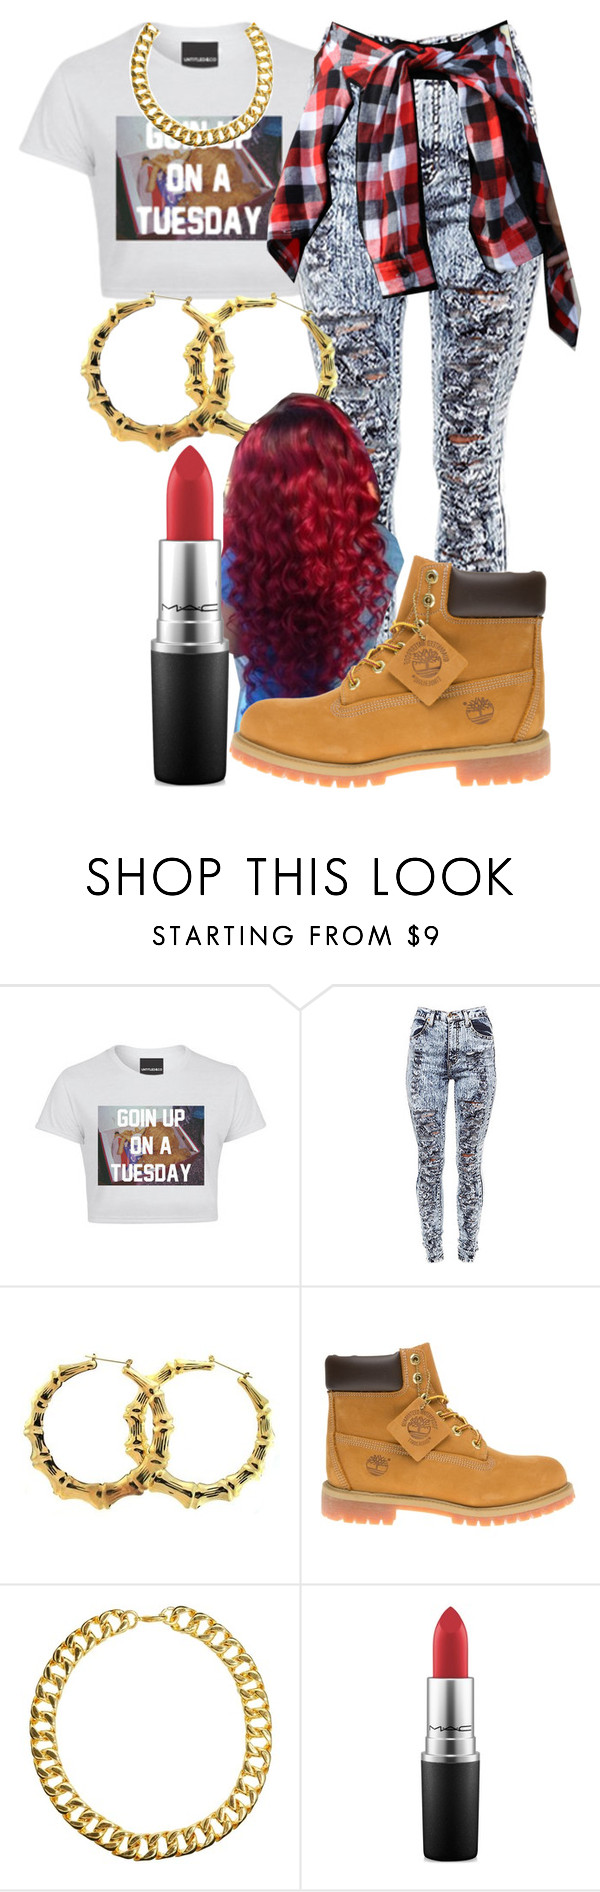 """Kehlani- The Way"" by femalekinggmimi ❤ liked on Polyvore featuring Untitled & Co, Timberland, Gogo Philip and MAC Cosmetics"